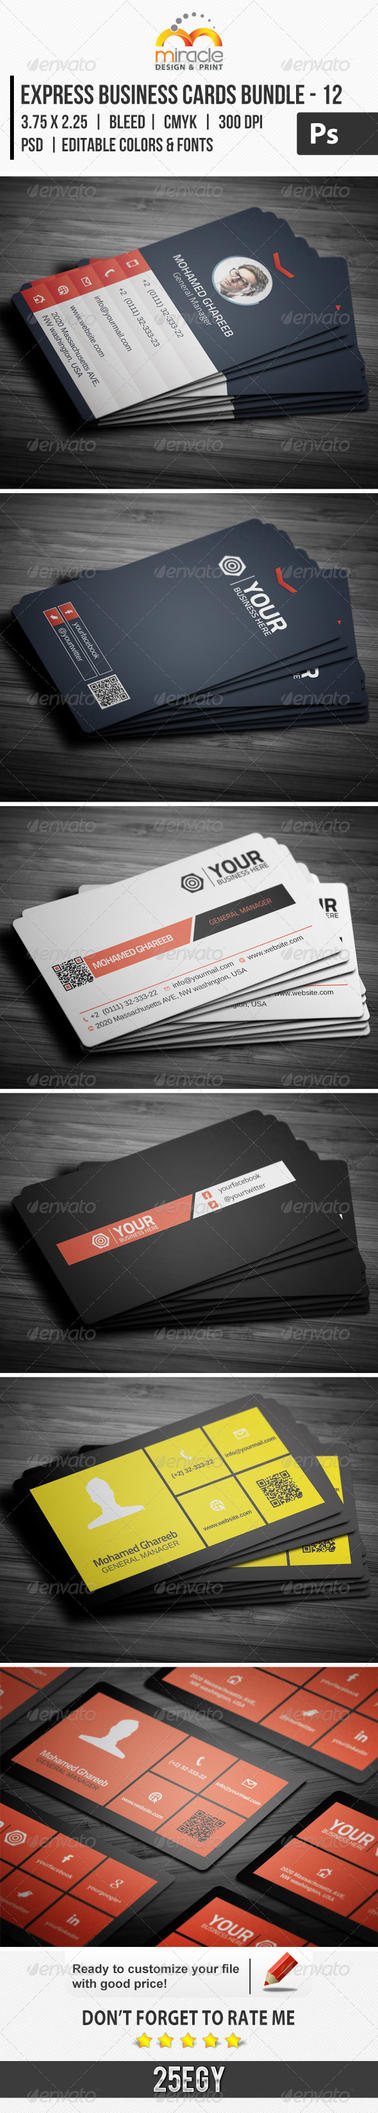 Express Business Cards Bundle 12 by LuxAeternaDesign on